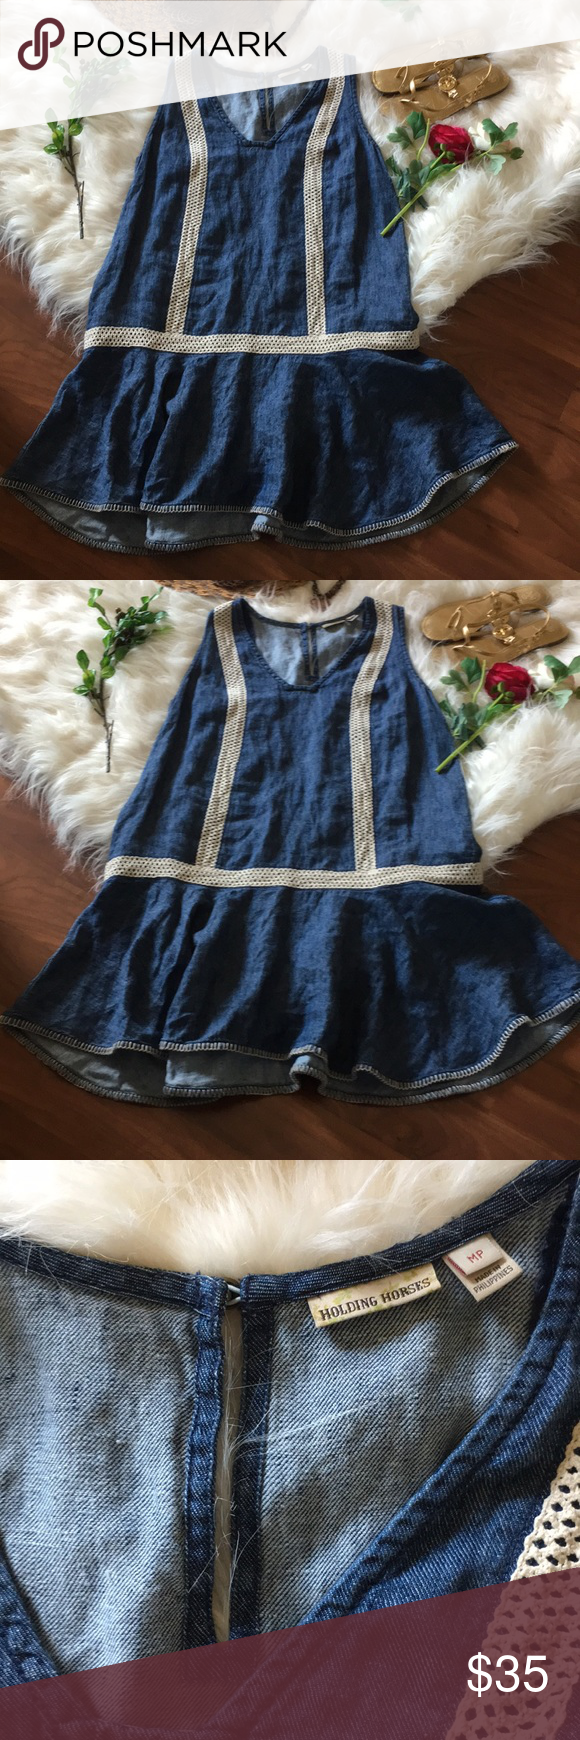 5191d79df0f Anthropologie Dress❤pb ❤In great used condition Anthropologie cute dress by  Holding Horses in size Medium Petite❤ Anthropologie Dresses